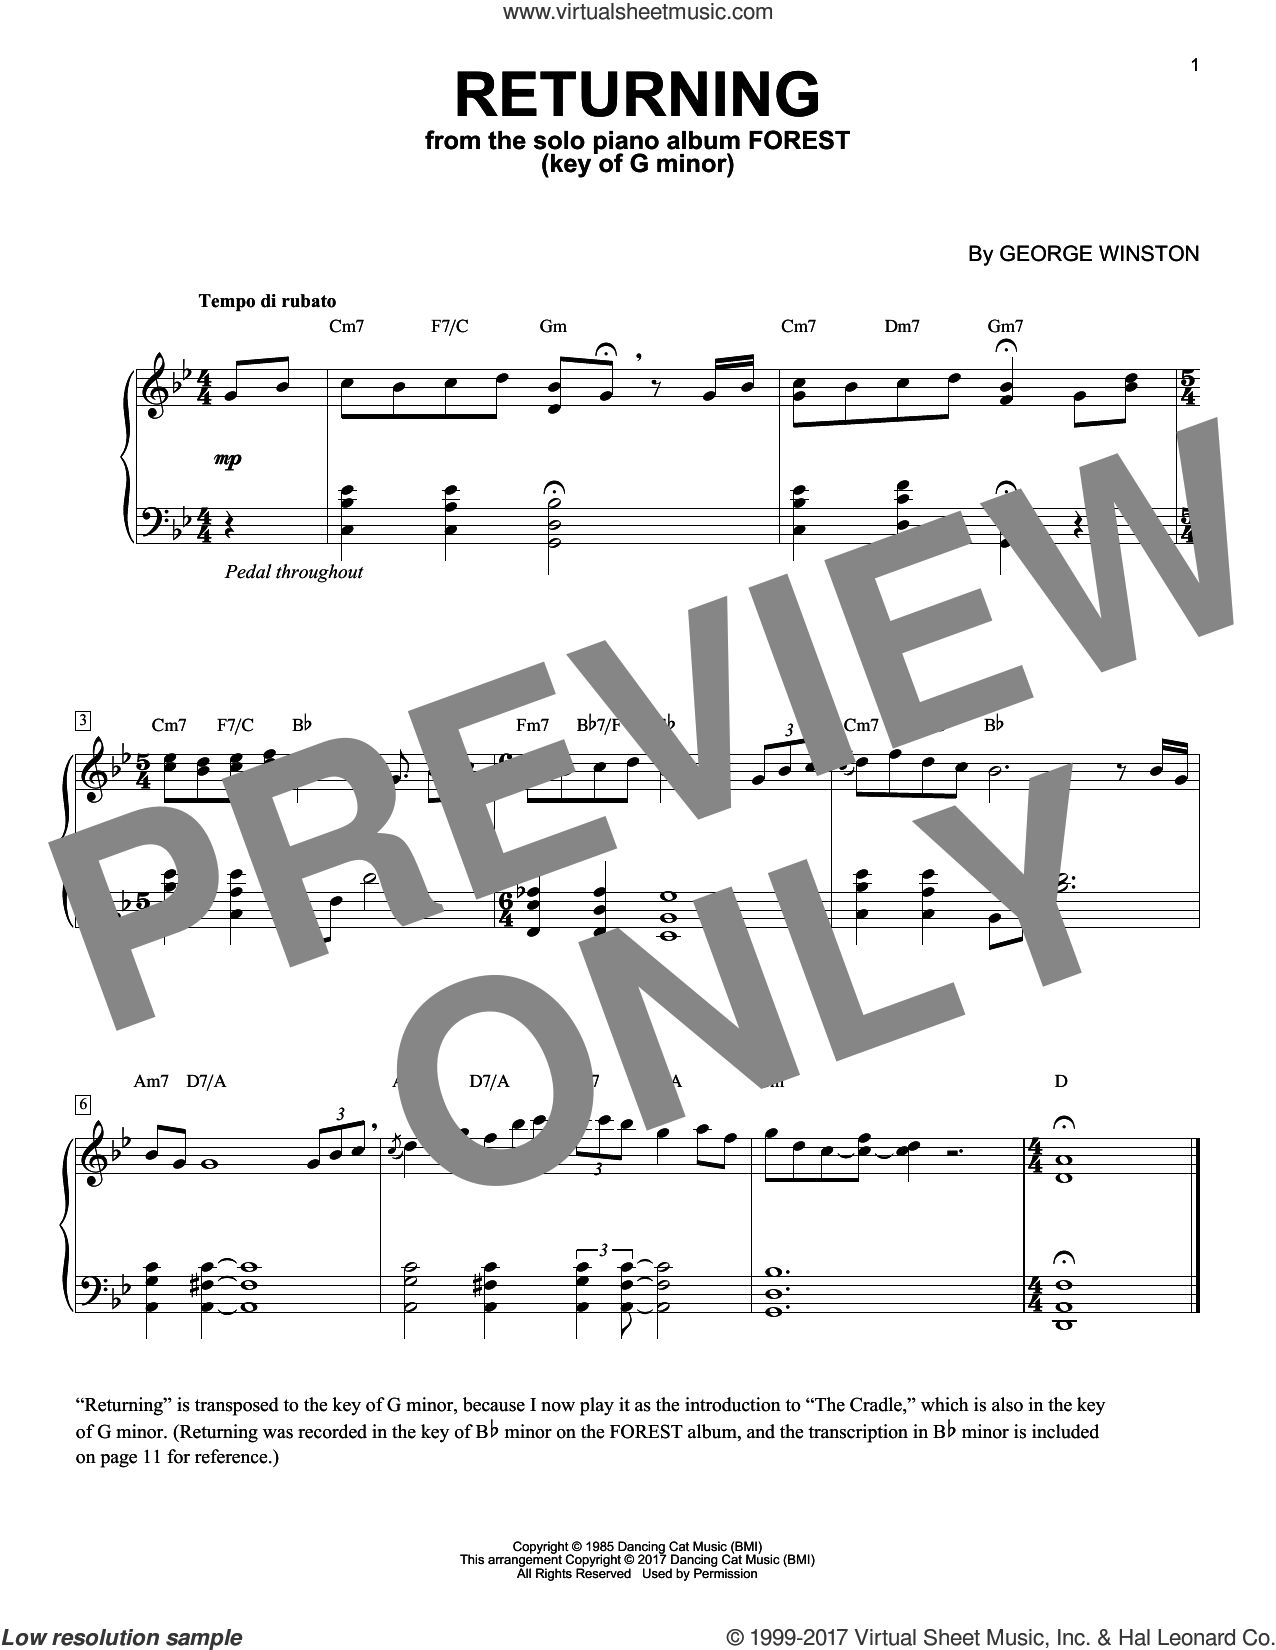 Returning In The Key Of G Minor sheet music for piano solo by George Winston, intermediate skill level